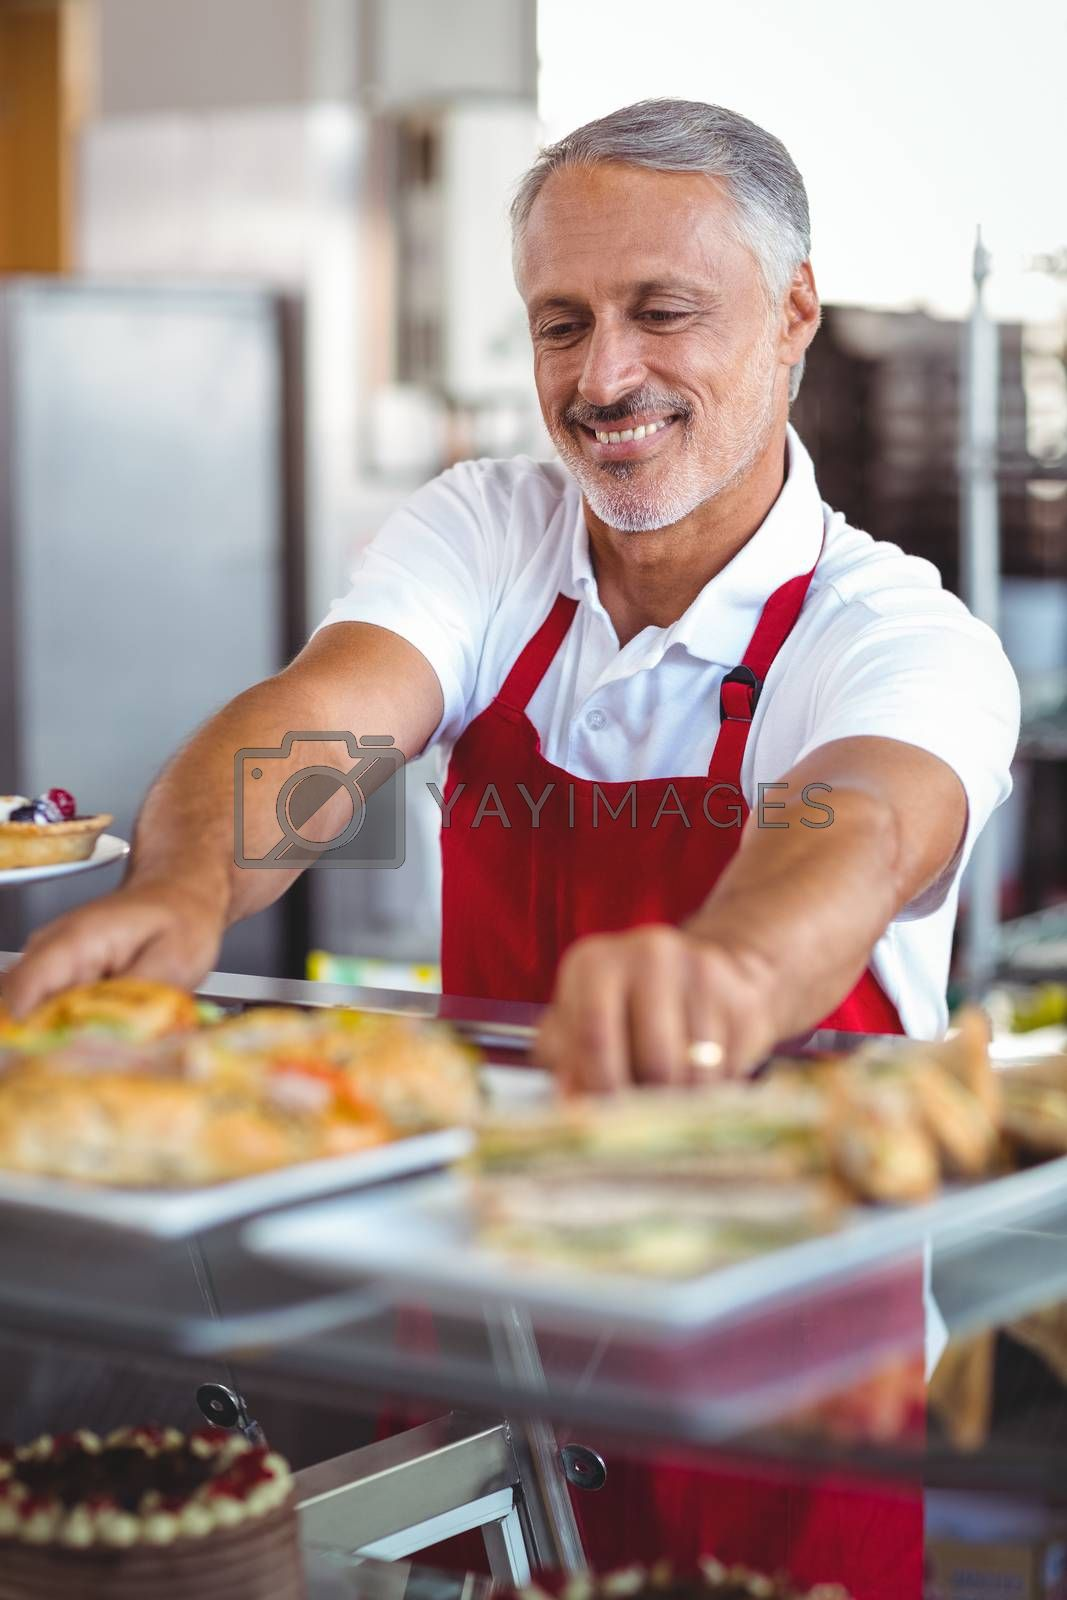 Royalty free image of Barista putting plates of pastries on counter by Wavebreakmedia